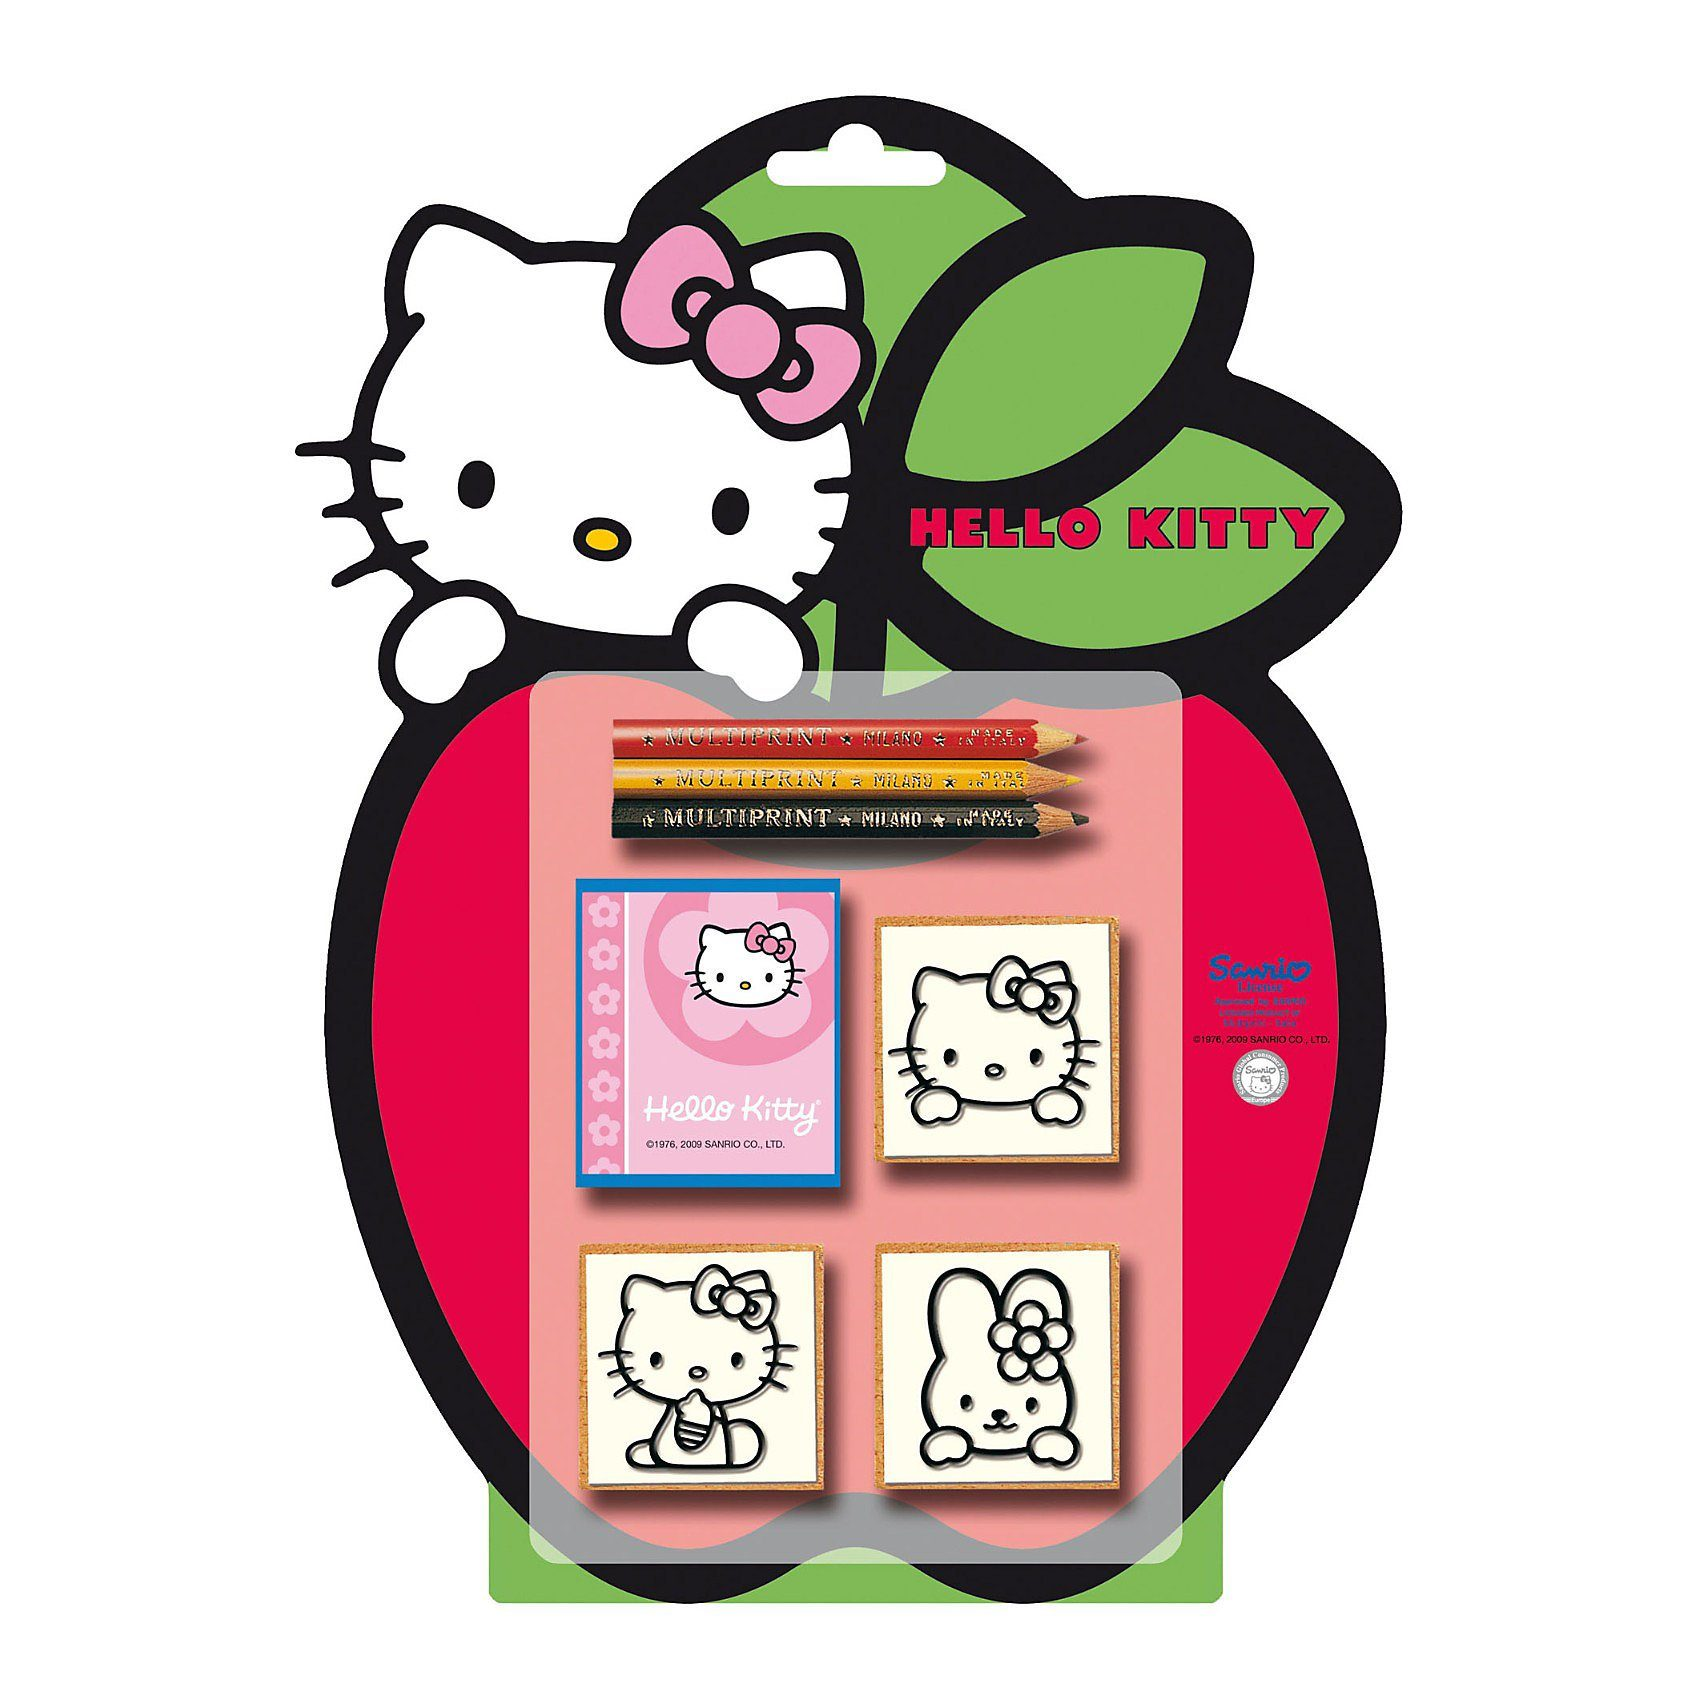 Amigo 3er Stempelset Hello Kitty